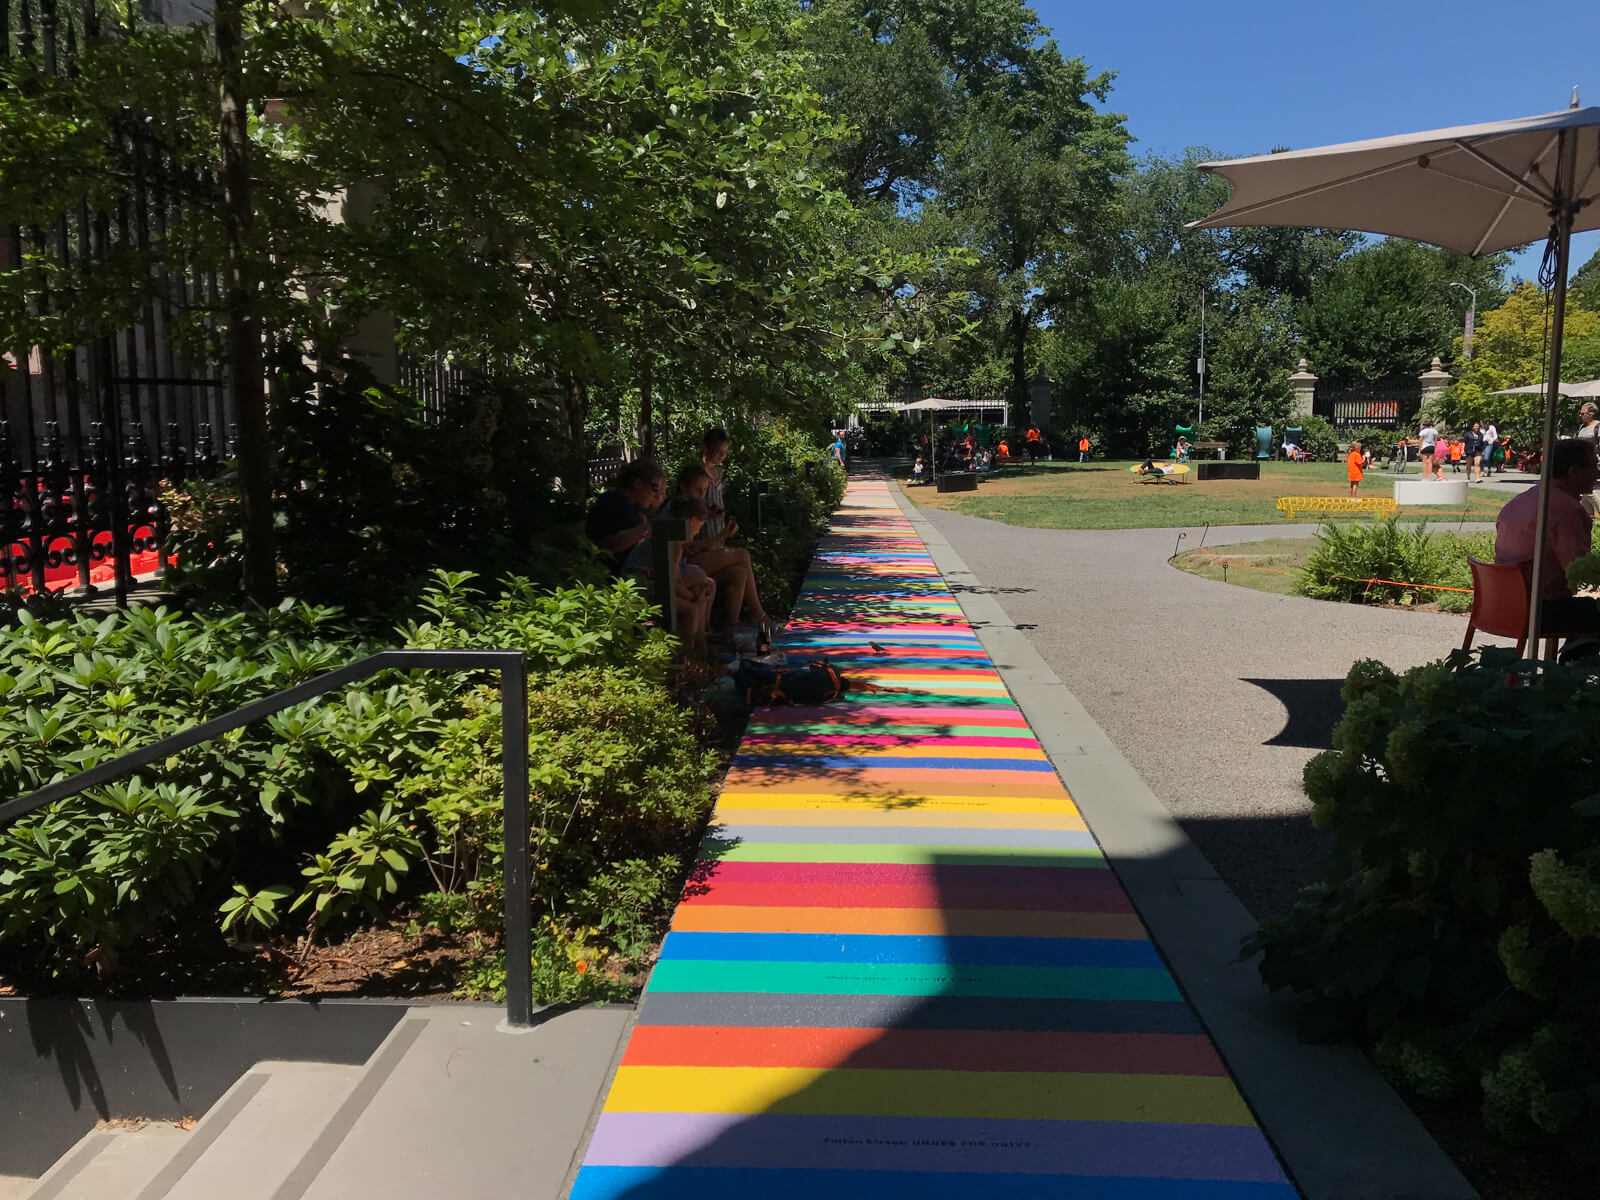 The inside of a park with a horizontally-striped short path in different colours. Some trees provide shade on the path